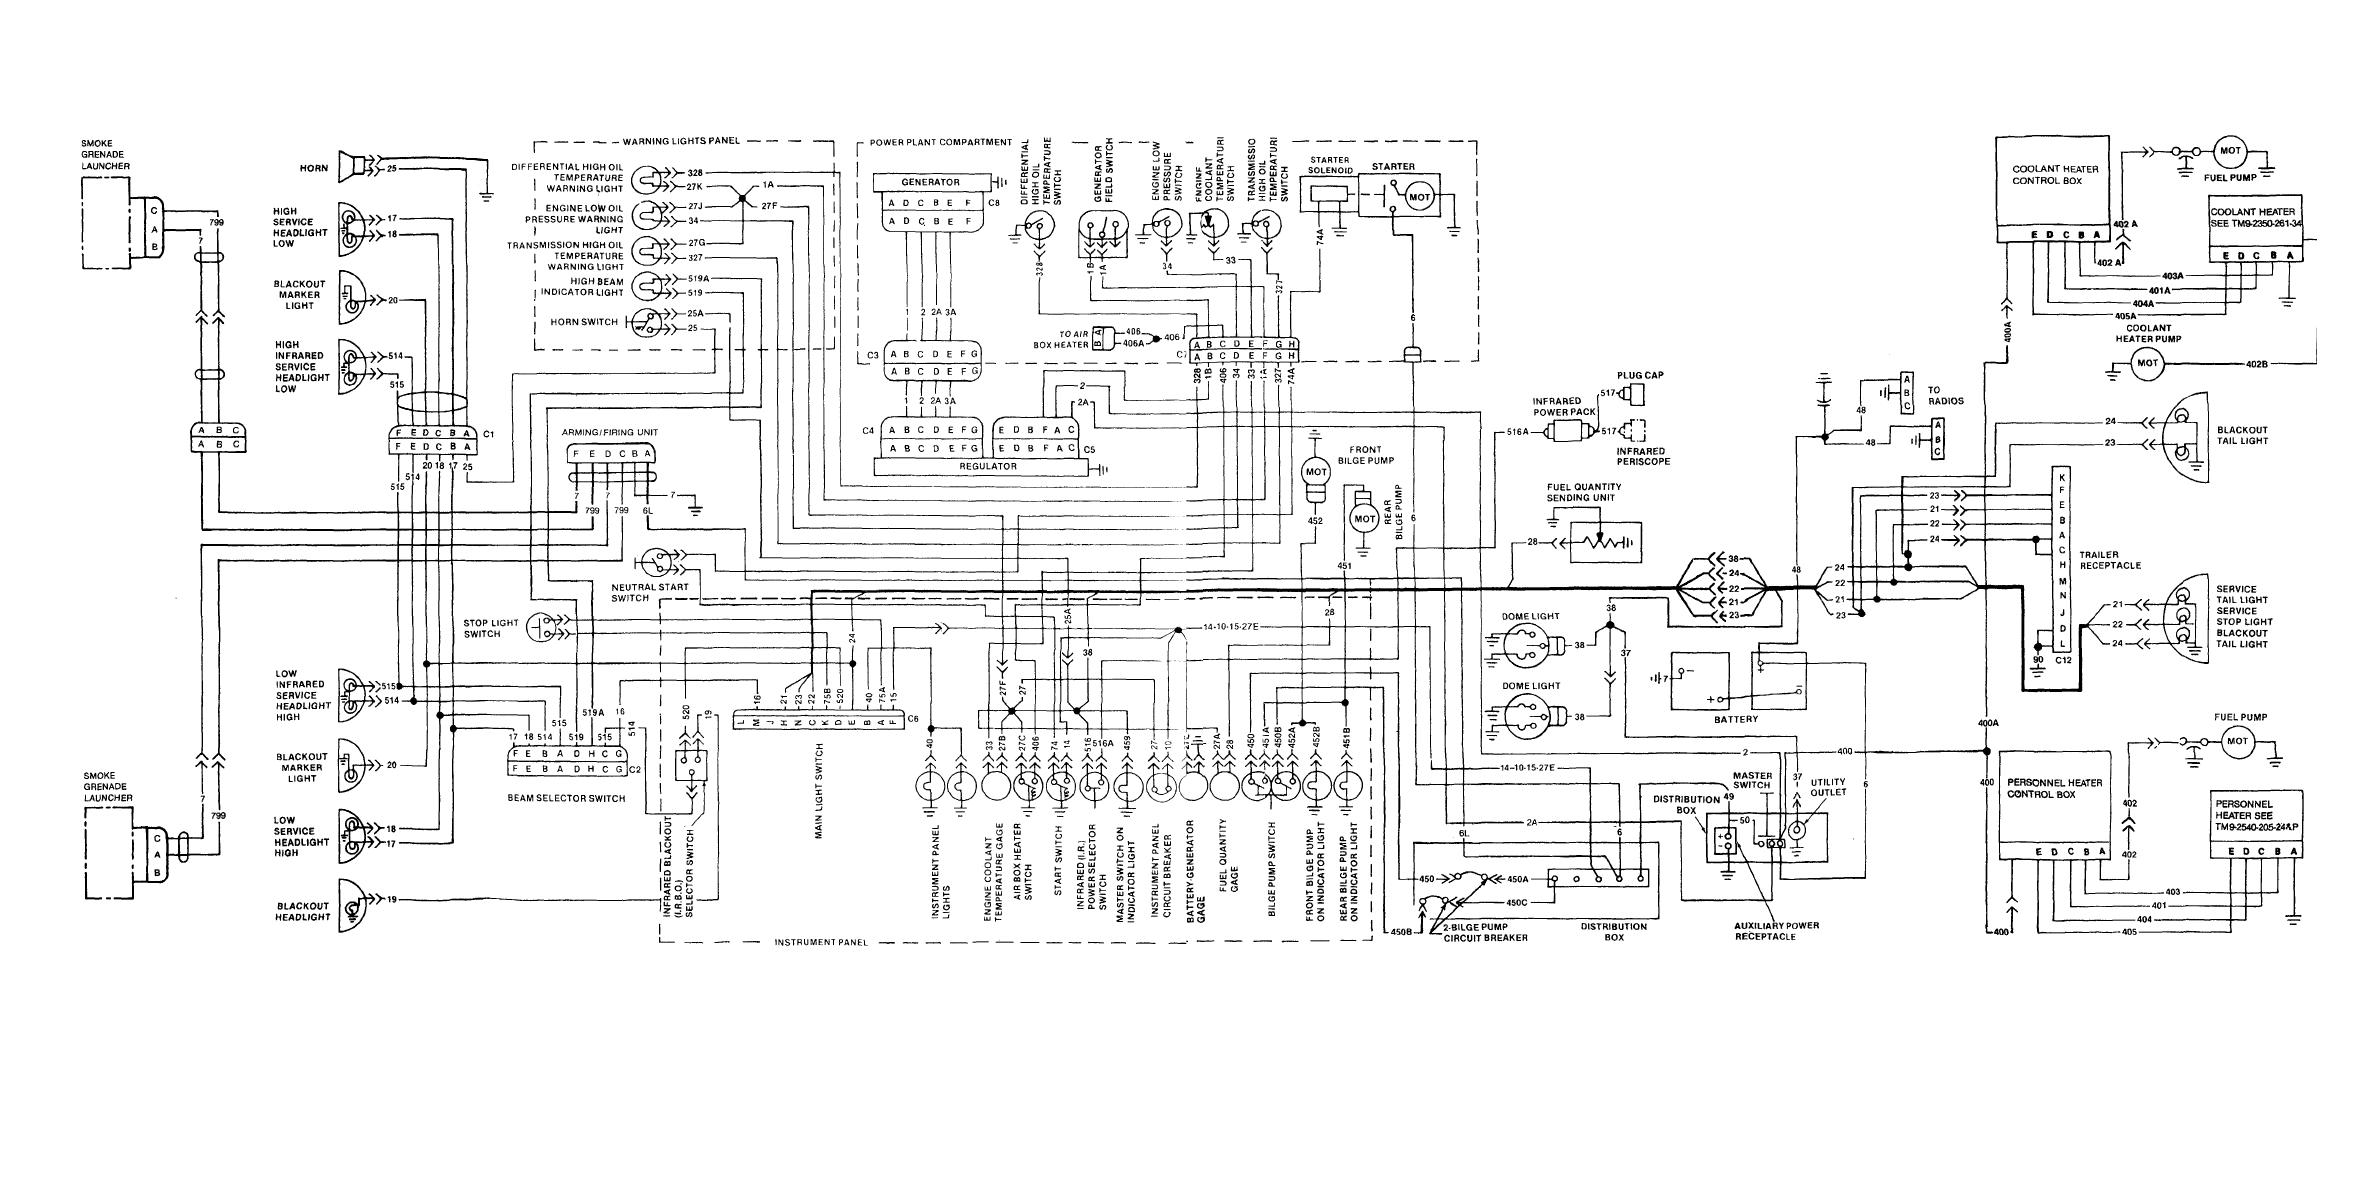 0825760739im m113a2 electrical wiring diagram 200 amp generator limitorque wiring diagram at fashall.co